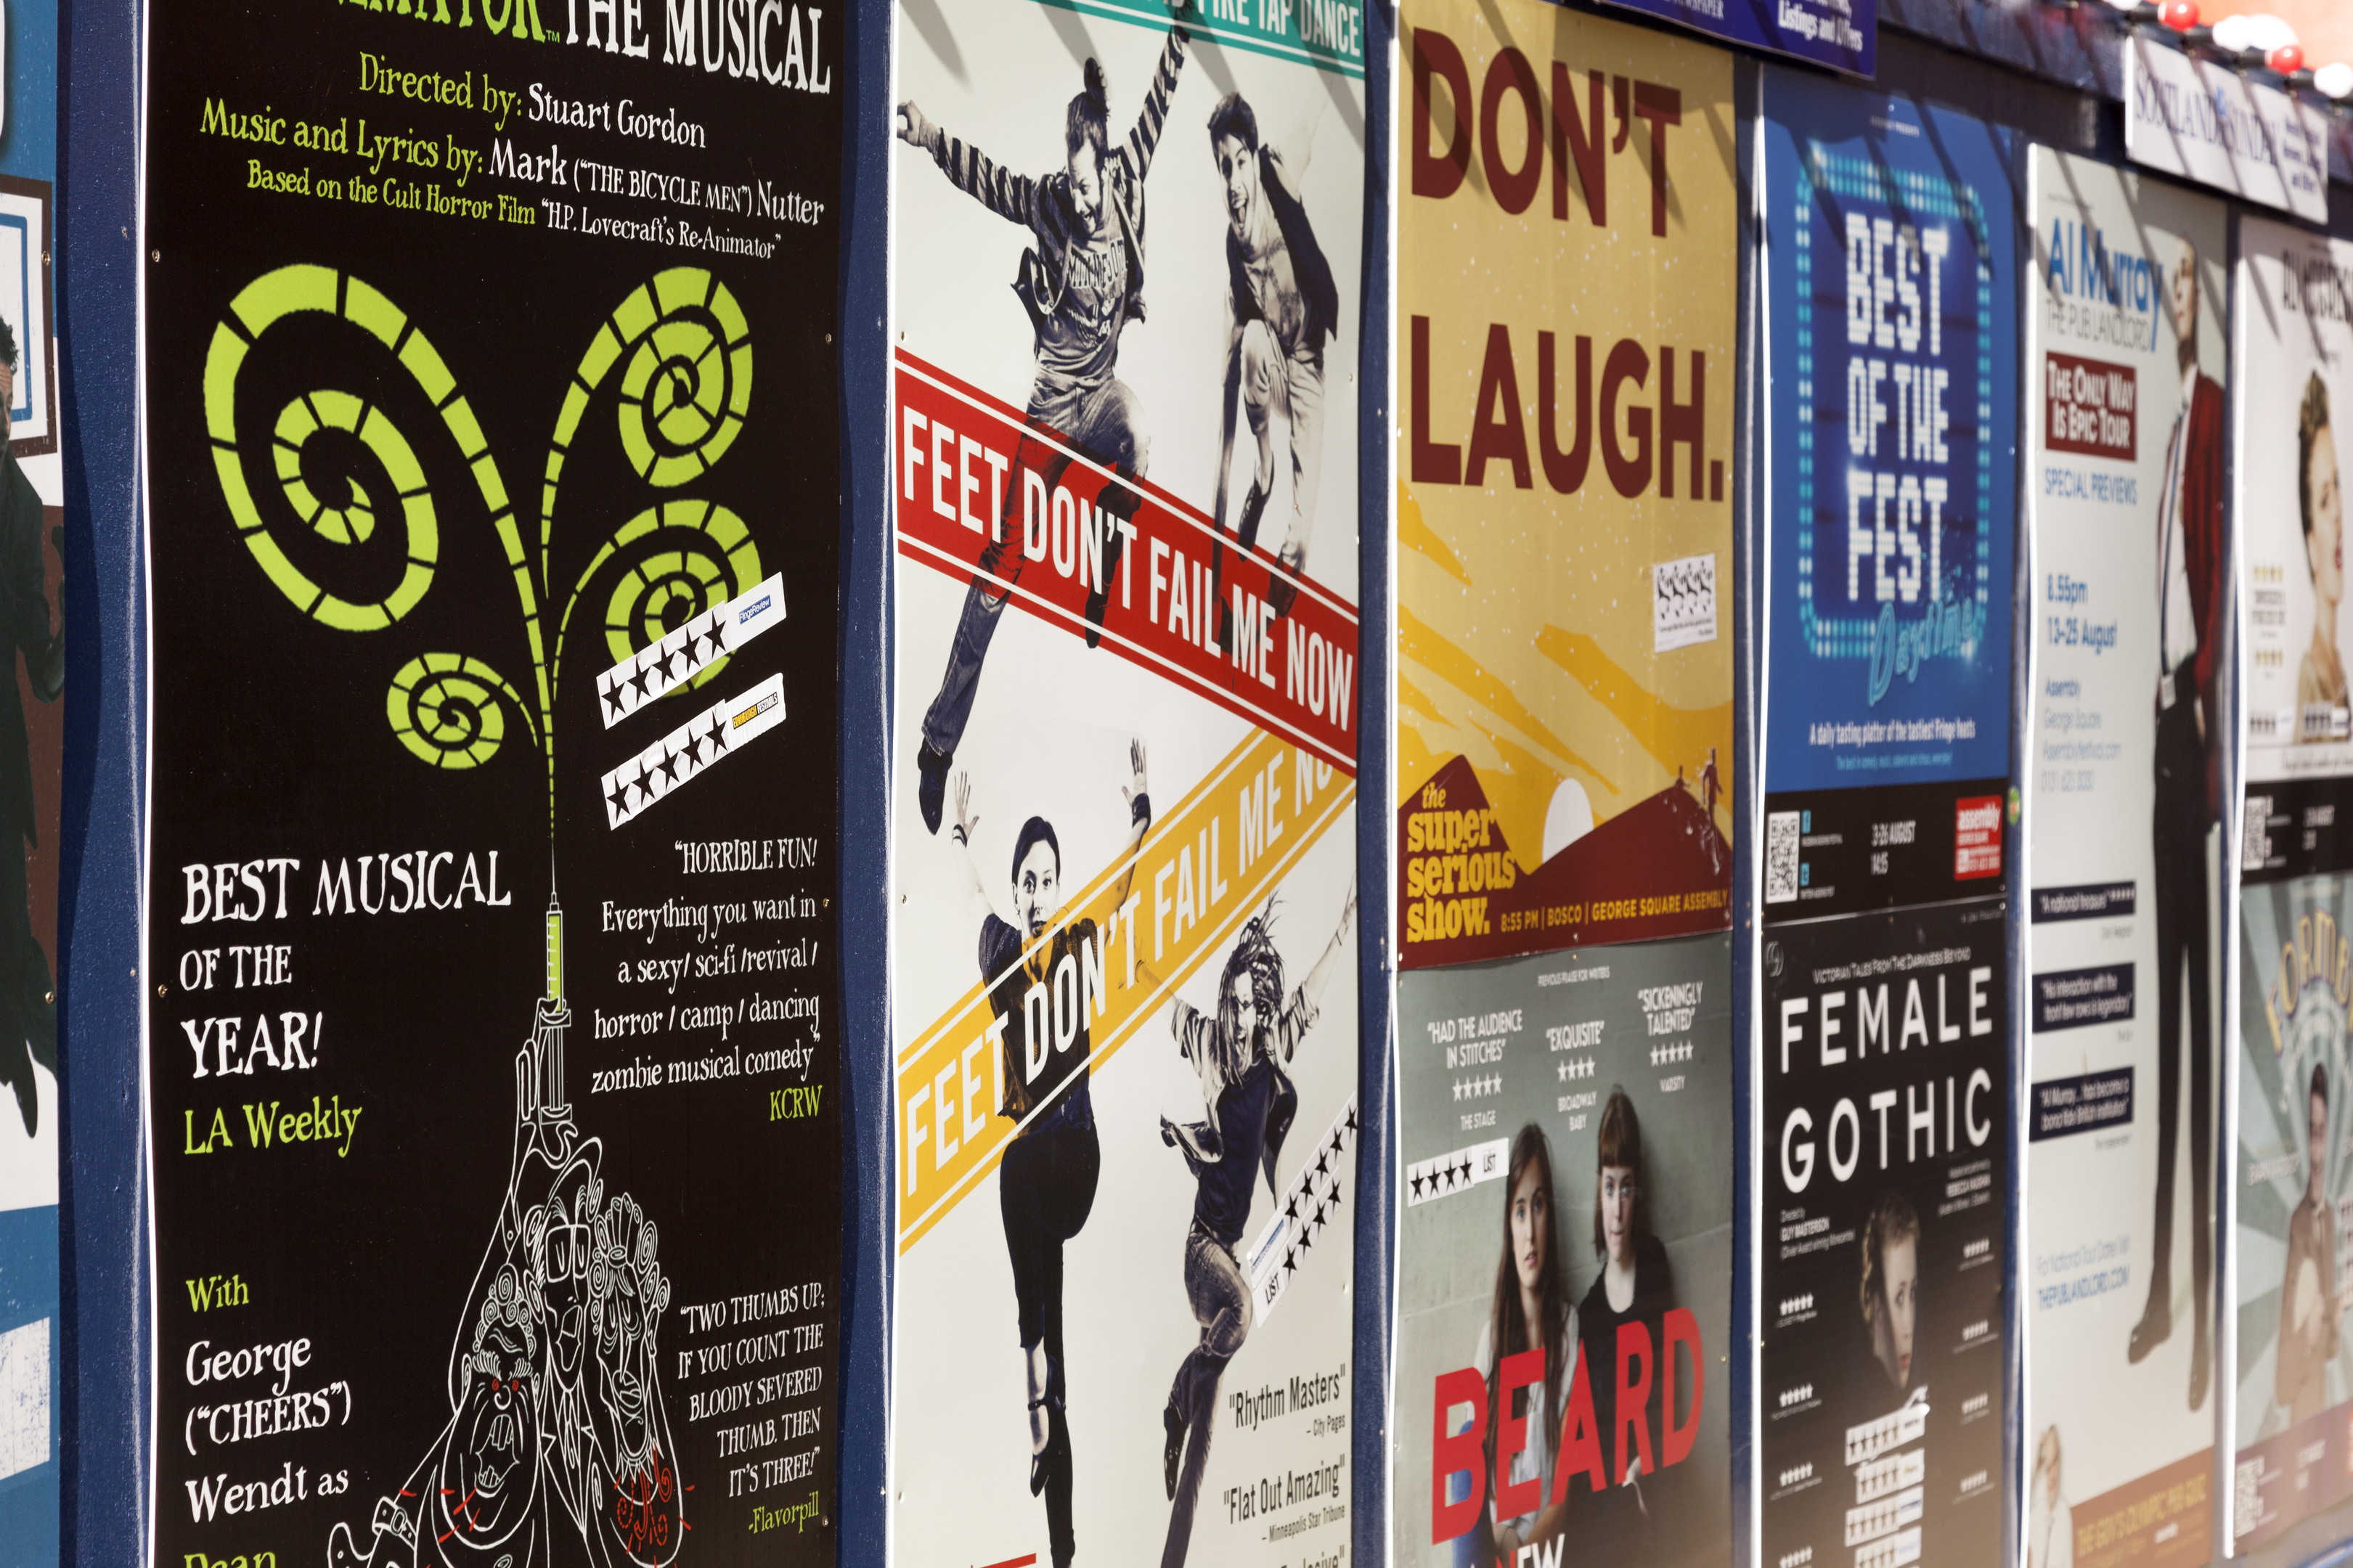 Shows from all categories in the Fringe programme are eligible for the Mental Health Fringe Award (iStock)